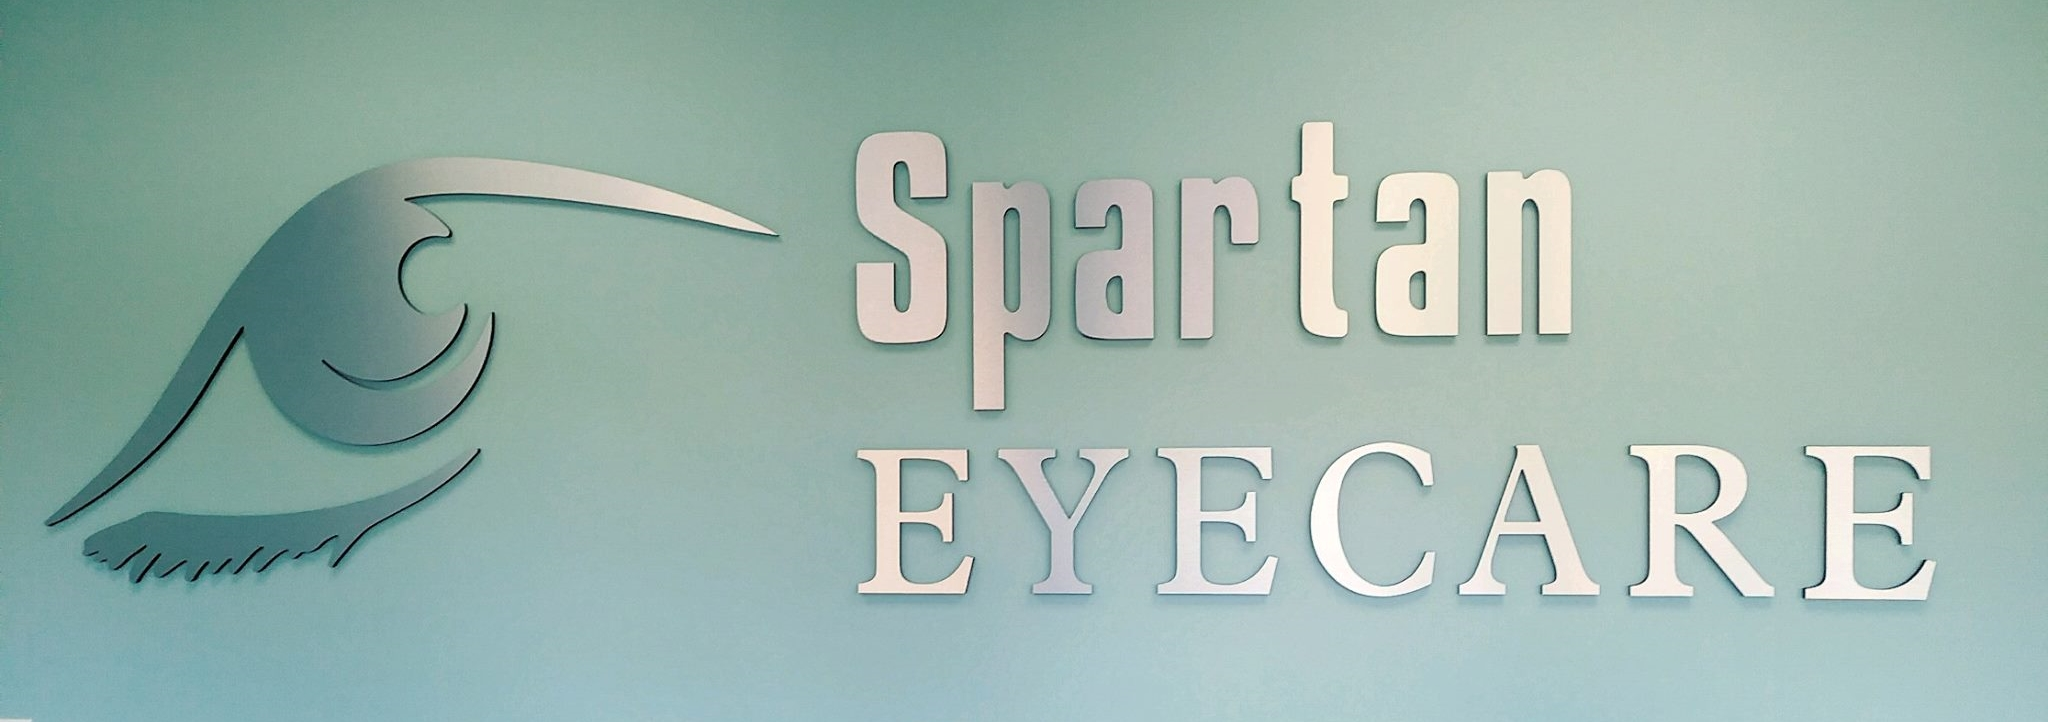 Spartan-Eyecare-sign